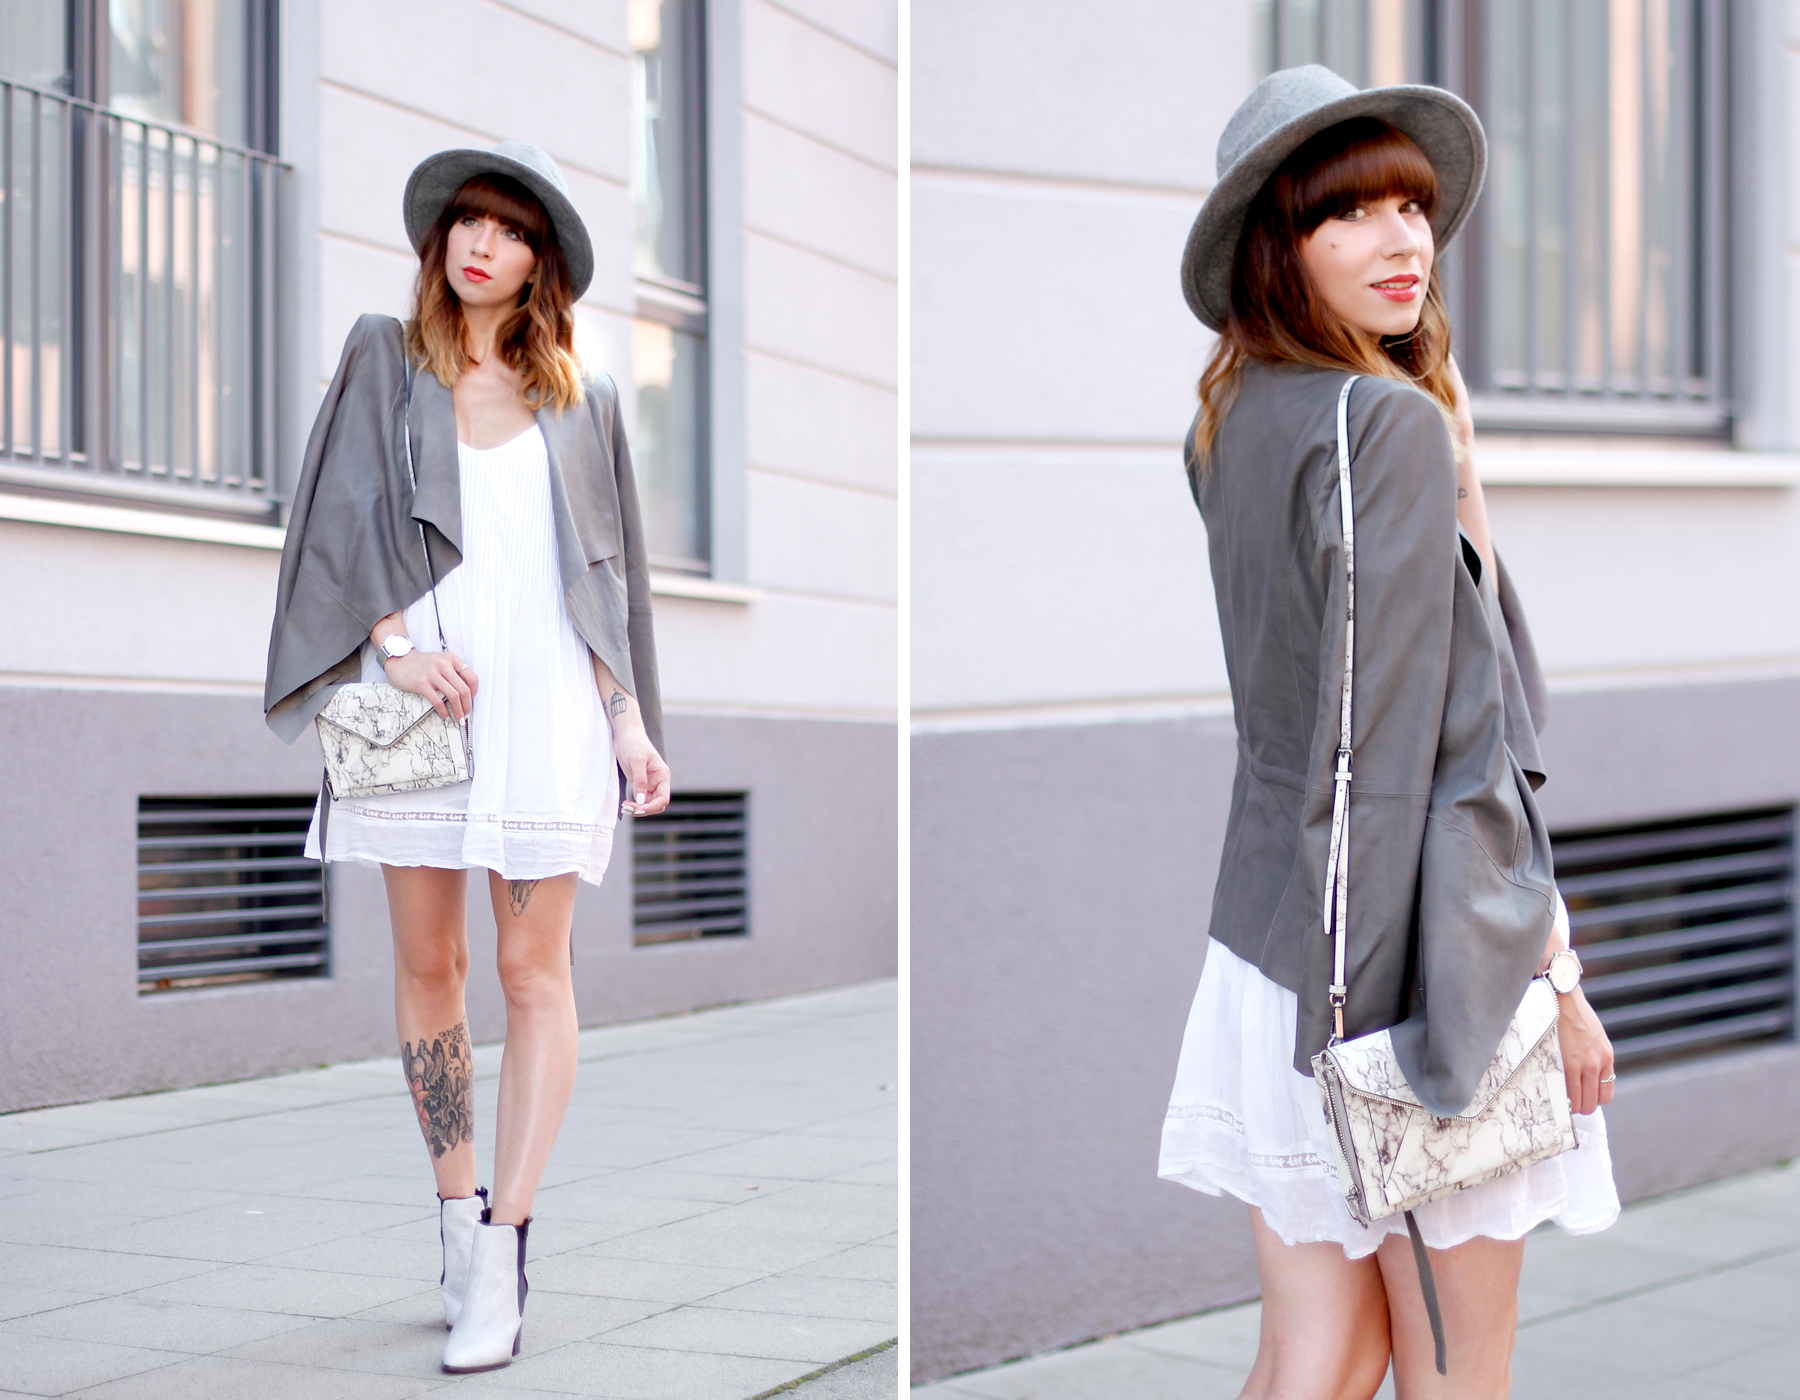 outfit grey hat drykorn leather jacket autumn look minimal chic cute redhead brunette boots fashion blog düsseldorf hannover berlin ricarda schernus cats & dogs 1